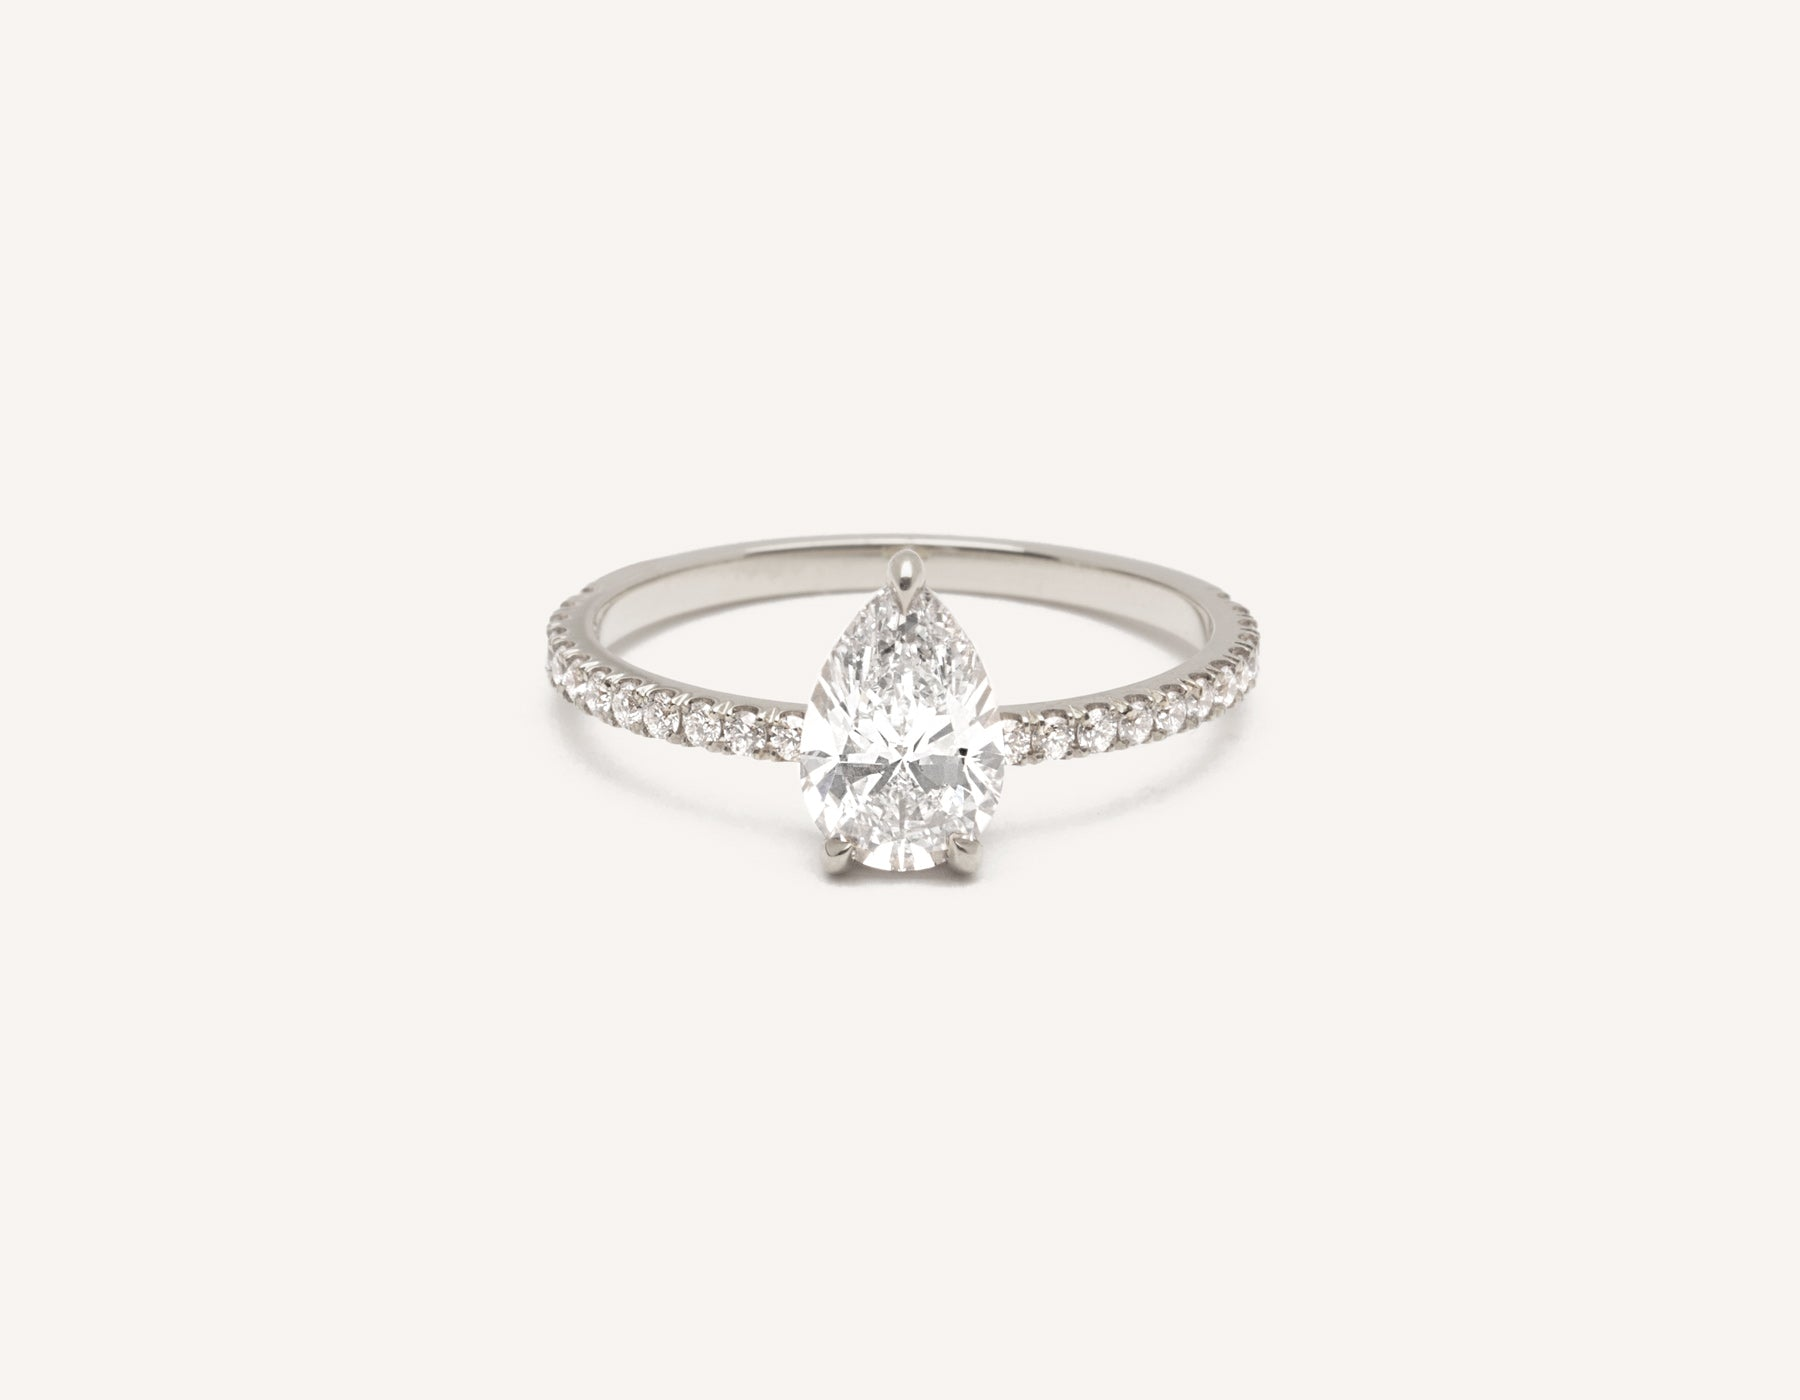 Minimalist platinum The pear Pave engagement ring 1 ct diamond Vrai and Oro